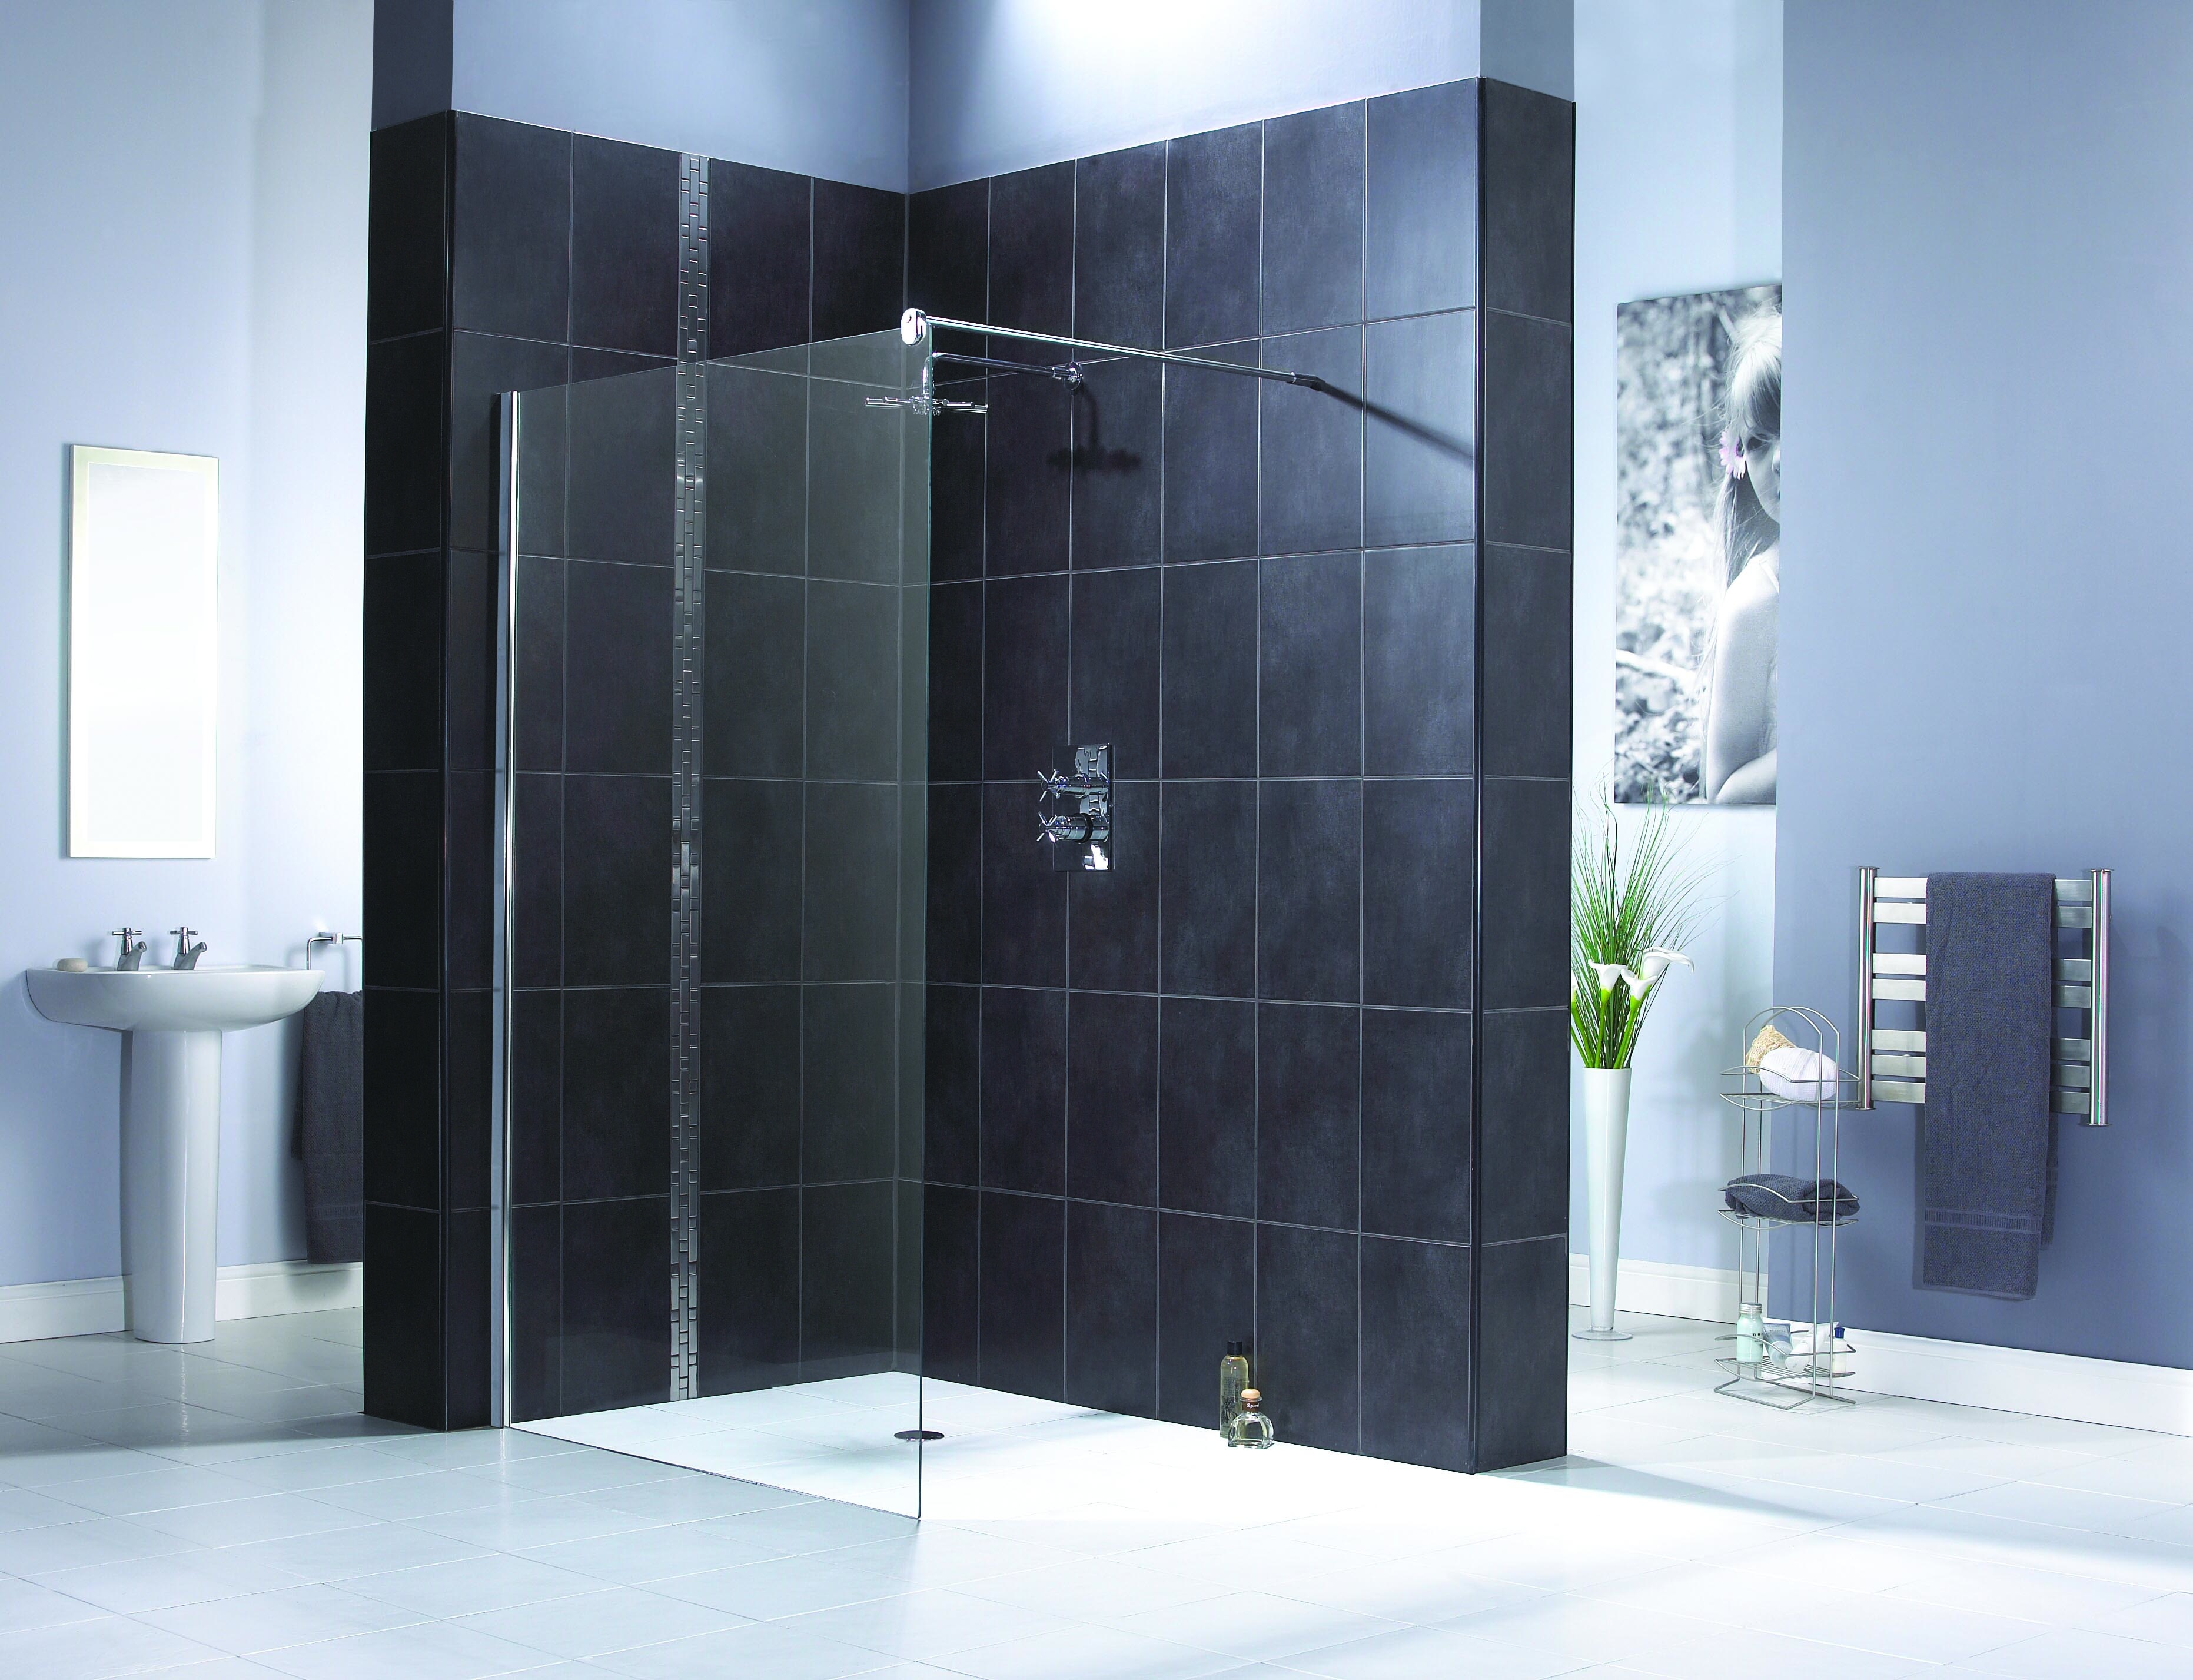 Aqualux Shine Shower Panel - Nationwide Bathrooms